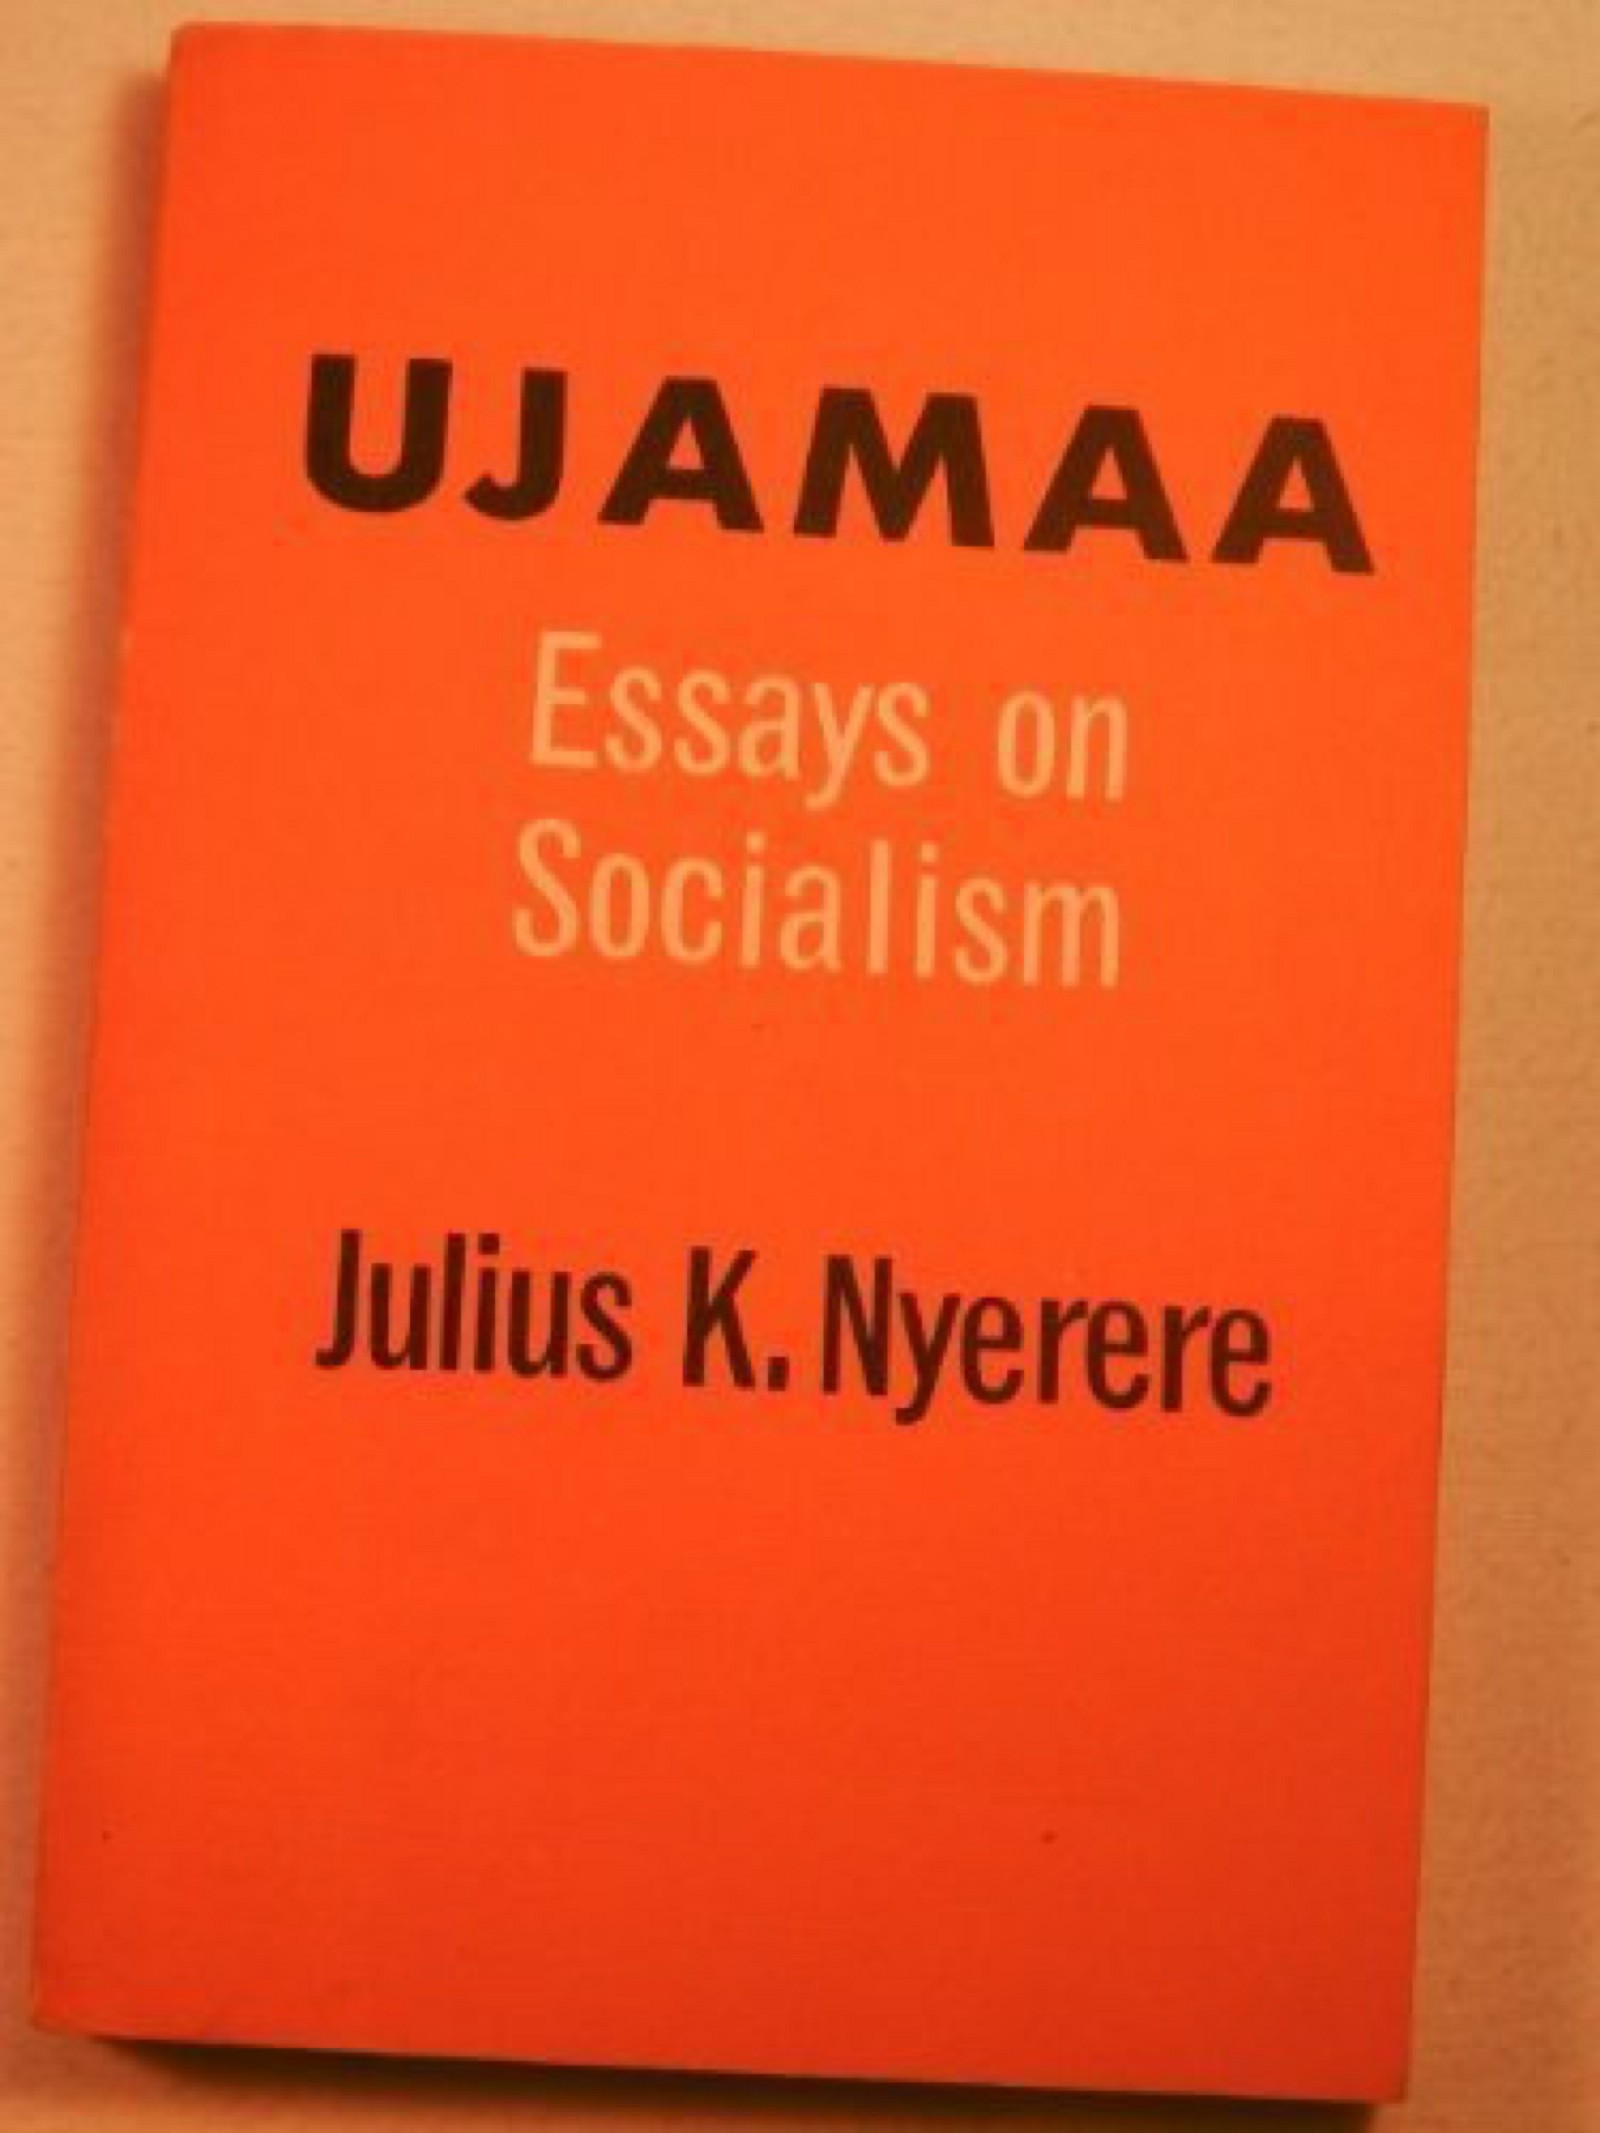 julius nyerere essays on socialism A pronounced pan-africanist, nyerere led tanganyika to independence and later  unified it with  julius nyerere - architect of african socialism.